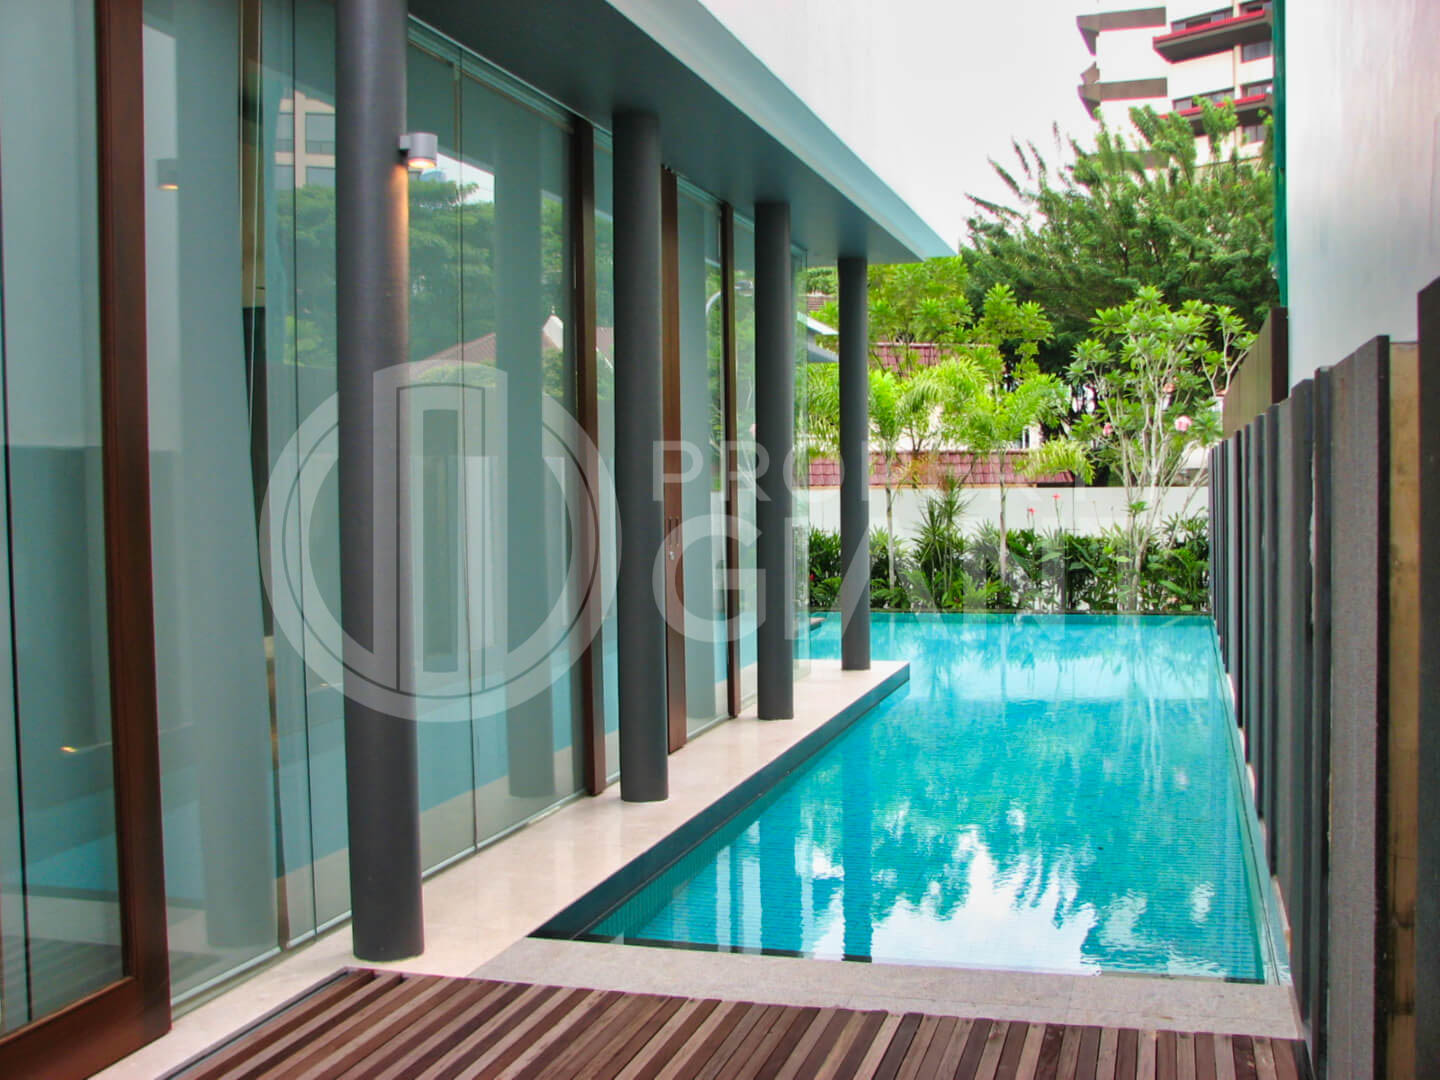 46 one tree hill (orchard) property giant